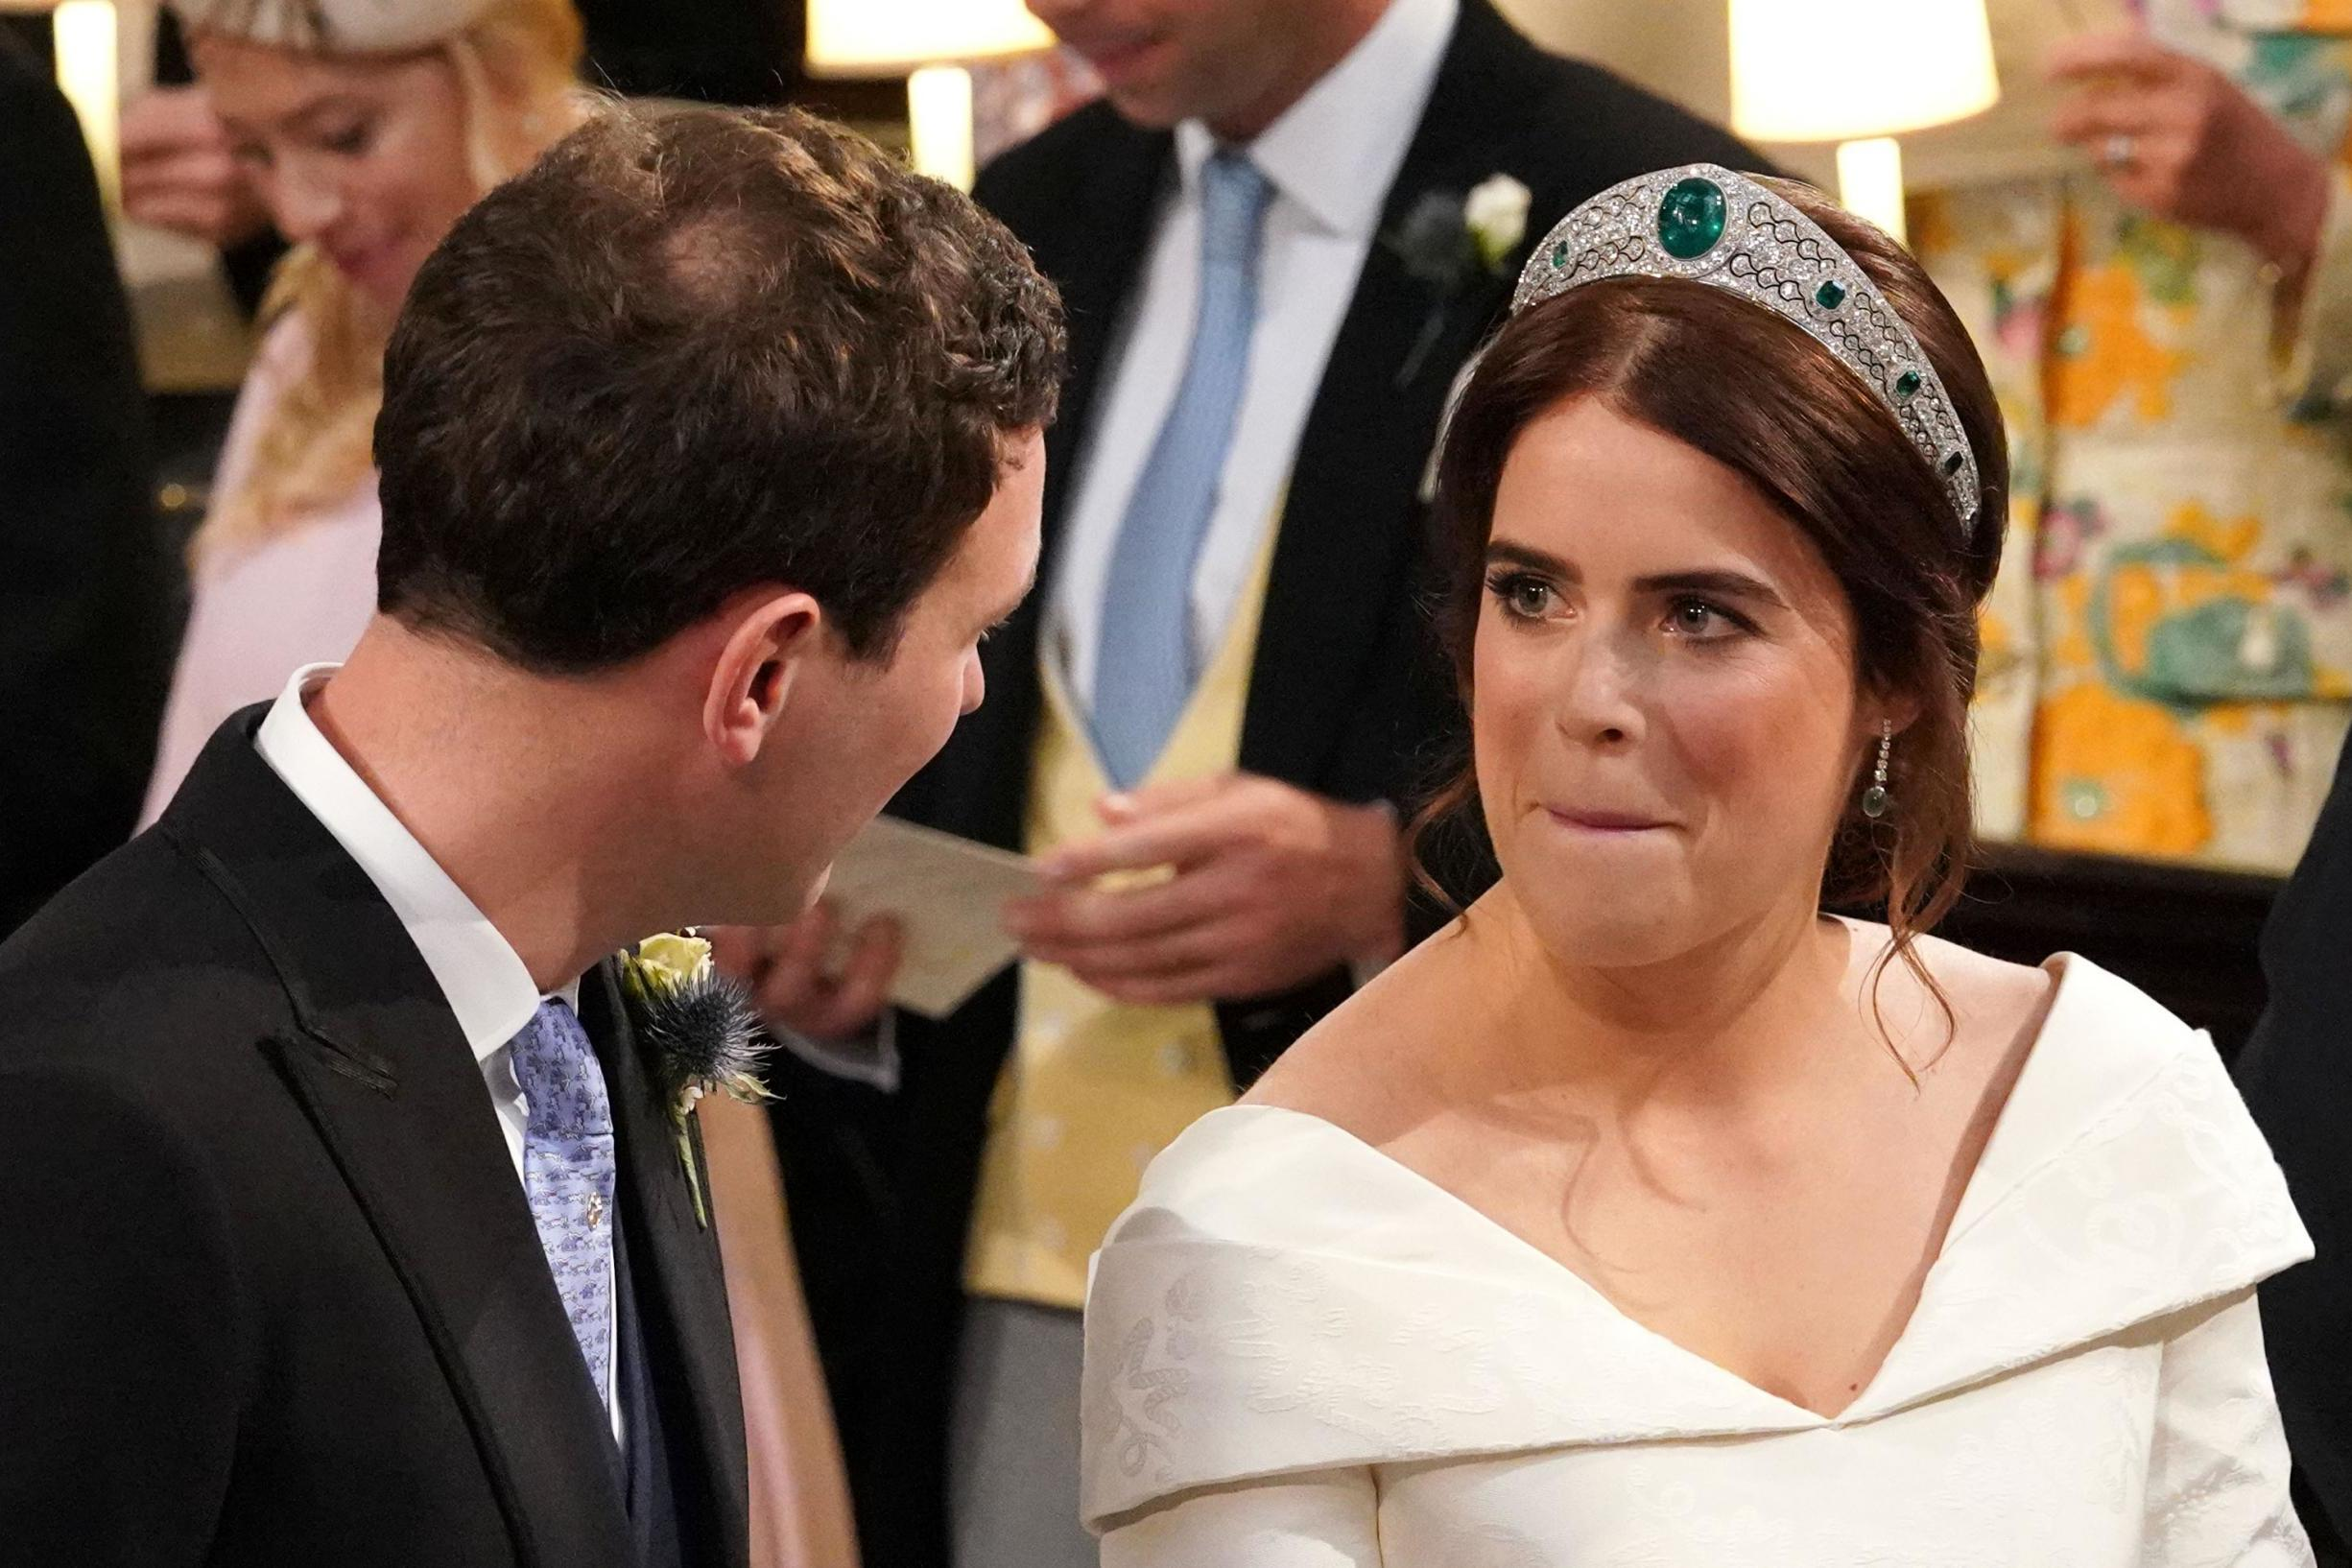 Royal wedding: The fascinating history behind Princess Eugenie's tiara